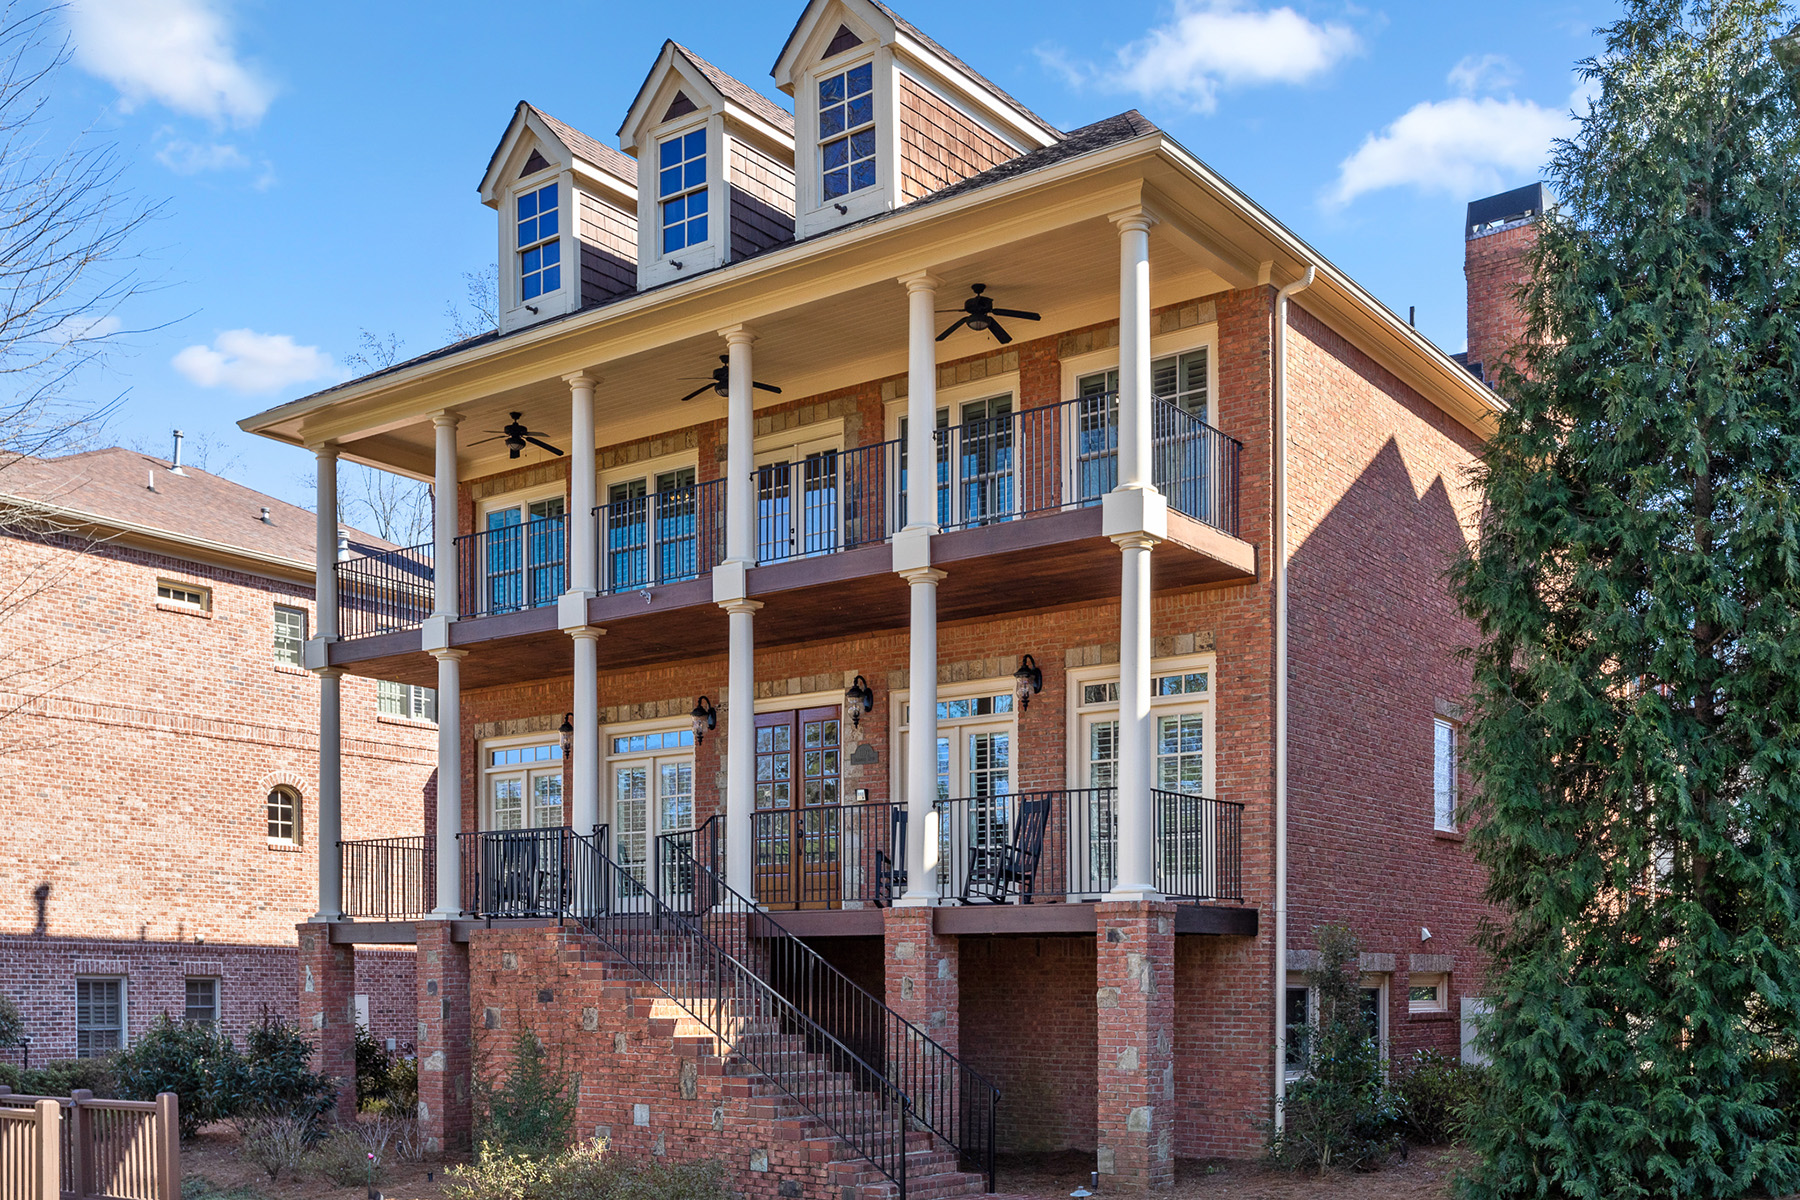 Single Family Homes for Sale at Custom Upgrades and Designer Finishes Situated in Dunroven Farm 1103 Dunroven Drive Sandy Springs, Georgia 30342 United States